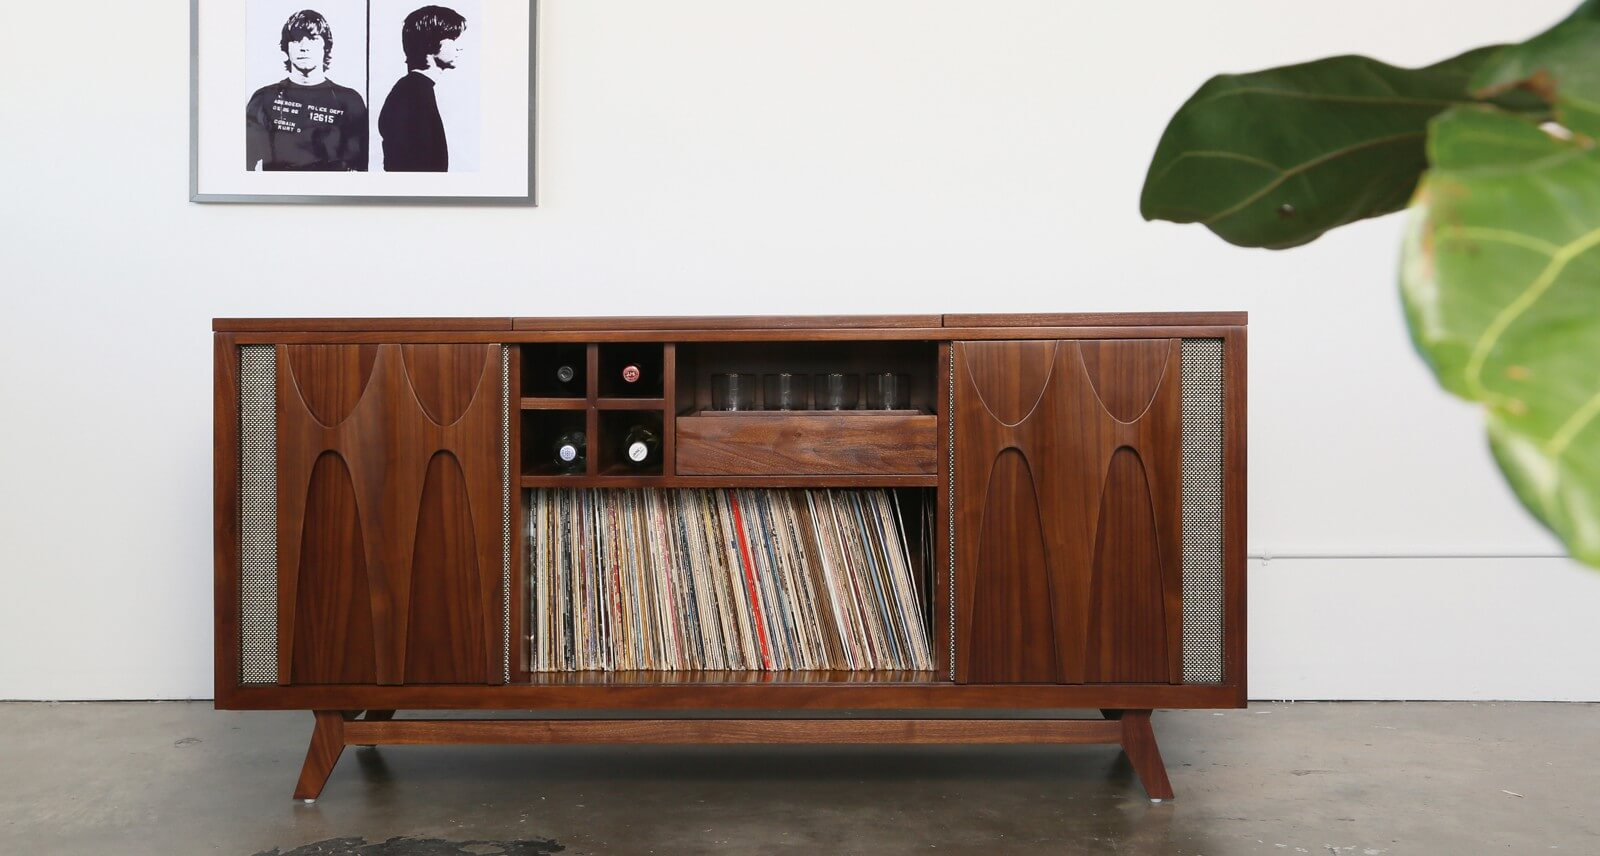 Top 10 - Best Record Player Stands of 2019